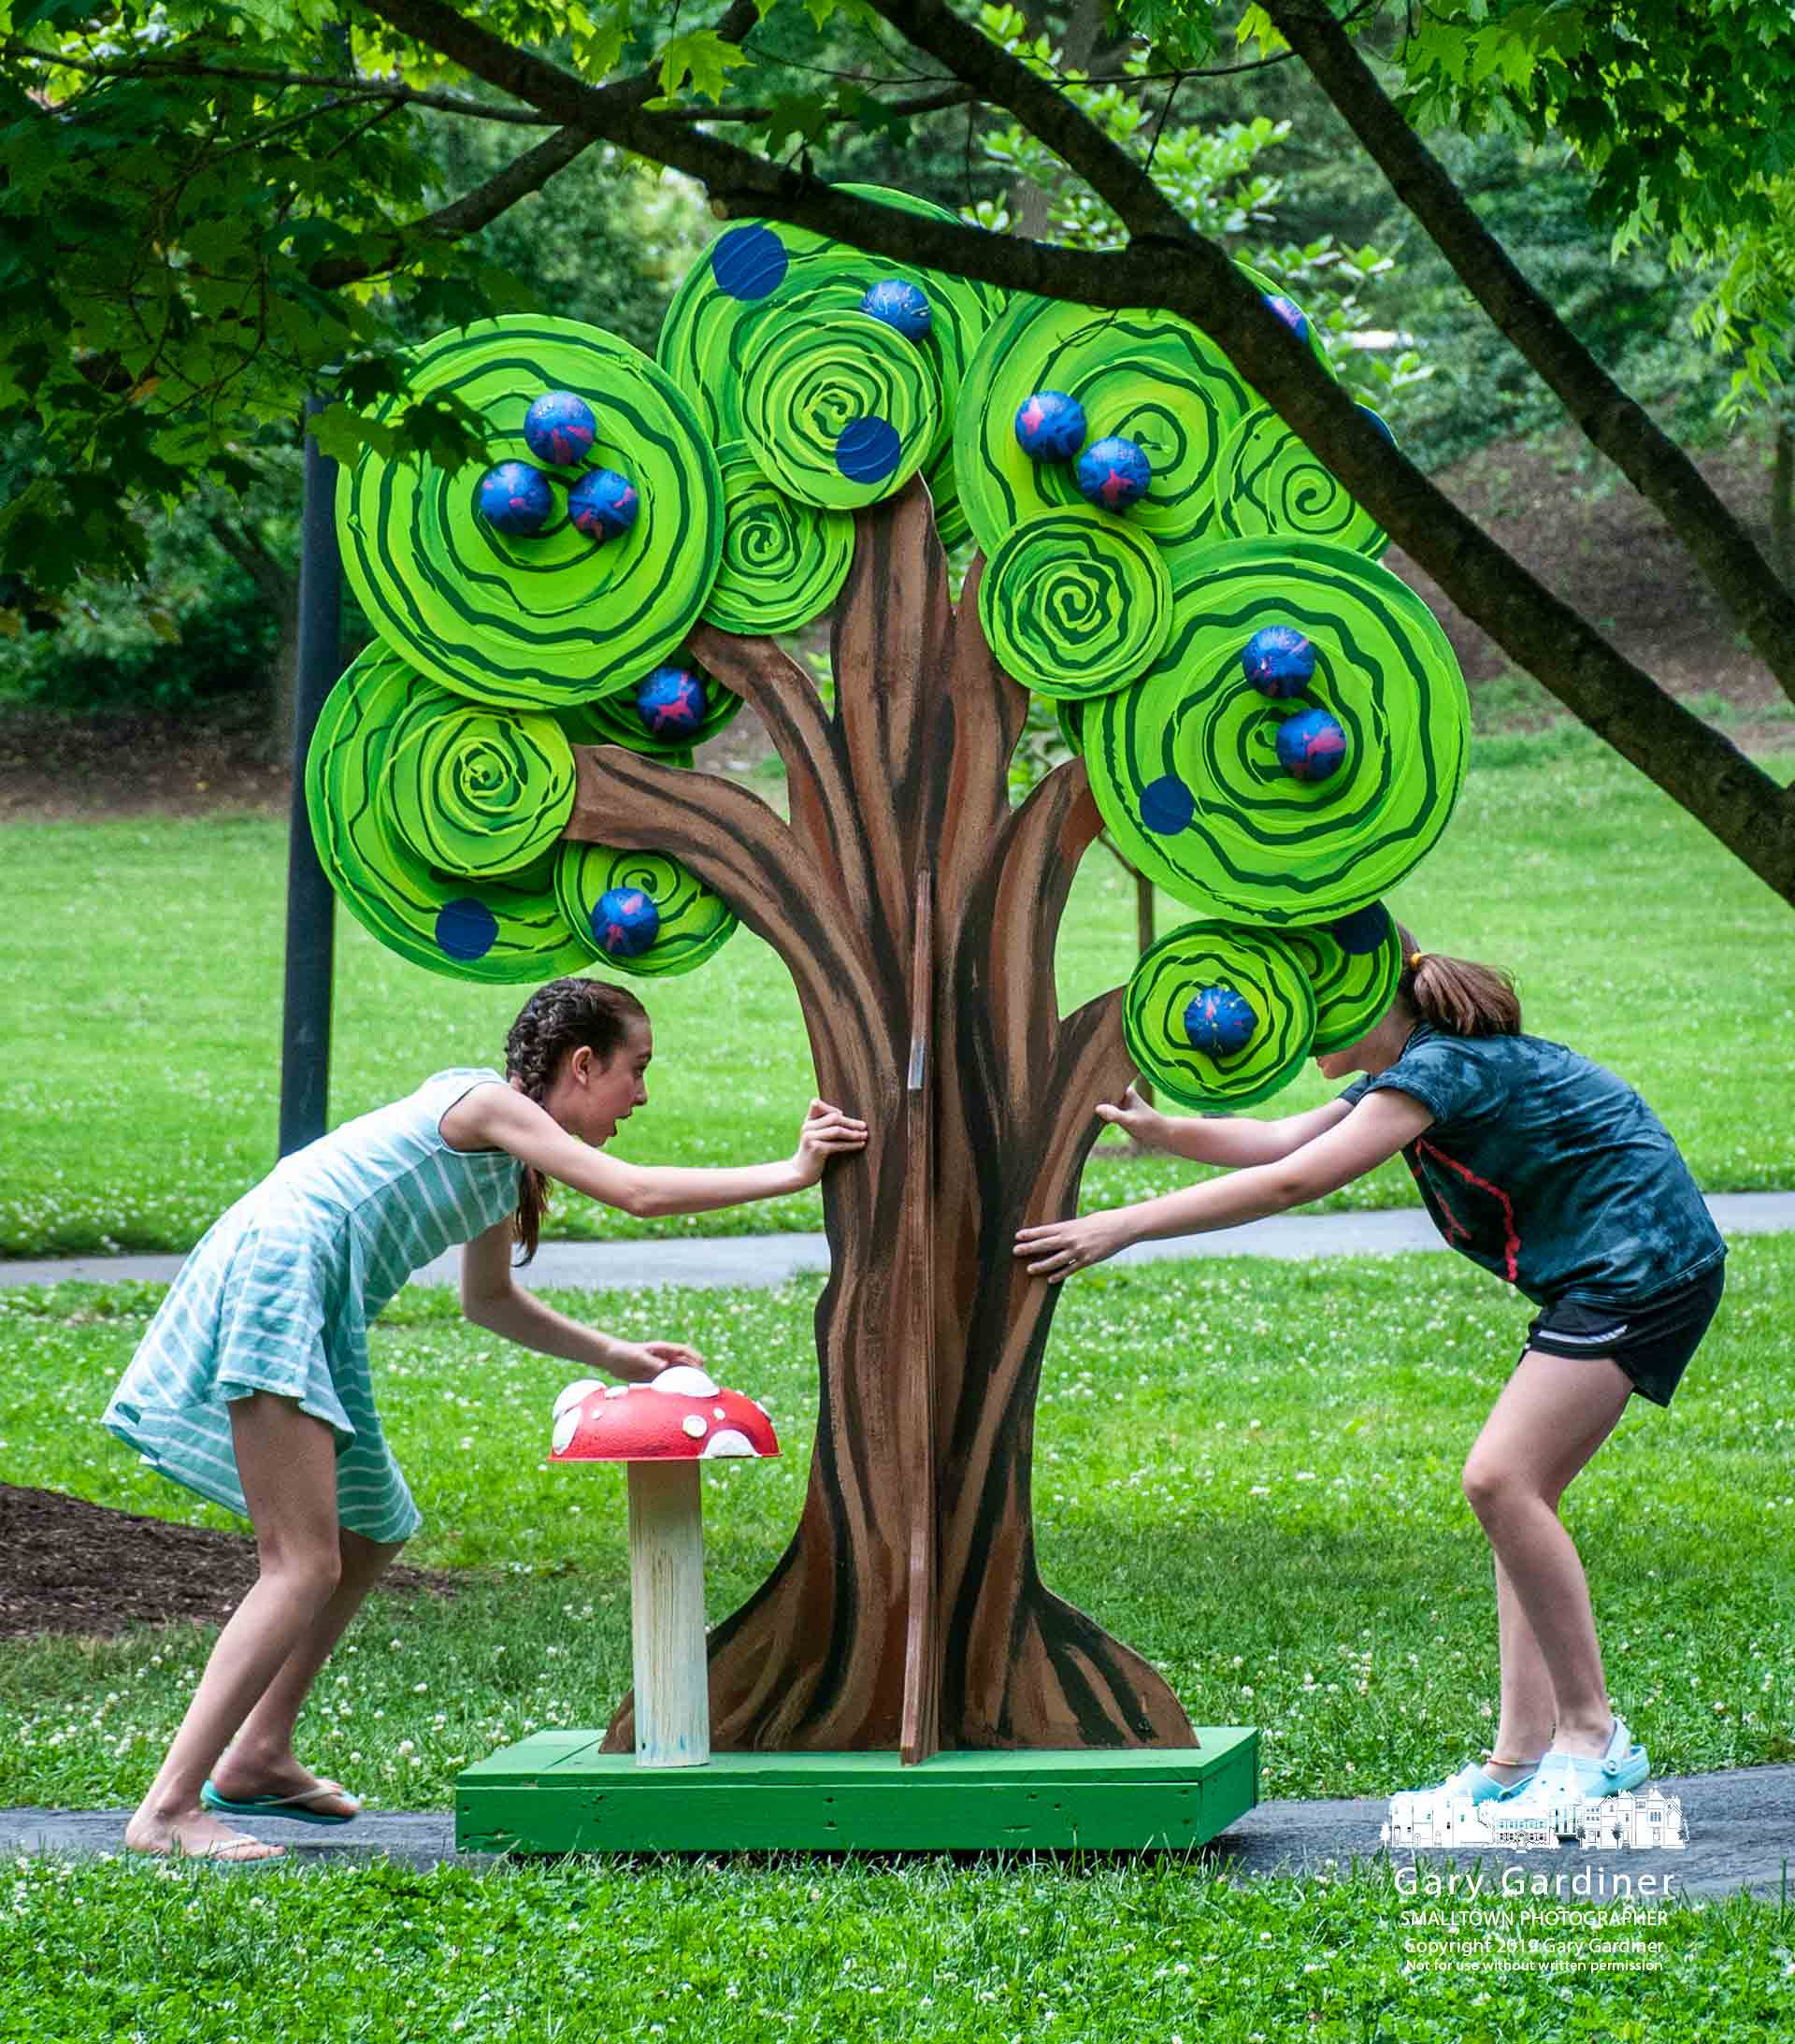 Alice in Wonderland Jr. cast members do double duty as stagehands as they move one of the set's trees toward the stage before the second performance of the Westerville Parks & Rec Civic Theatre's production at Alum Creek Amphitheater. My Final Photo for May 31, 2019.